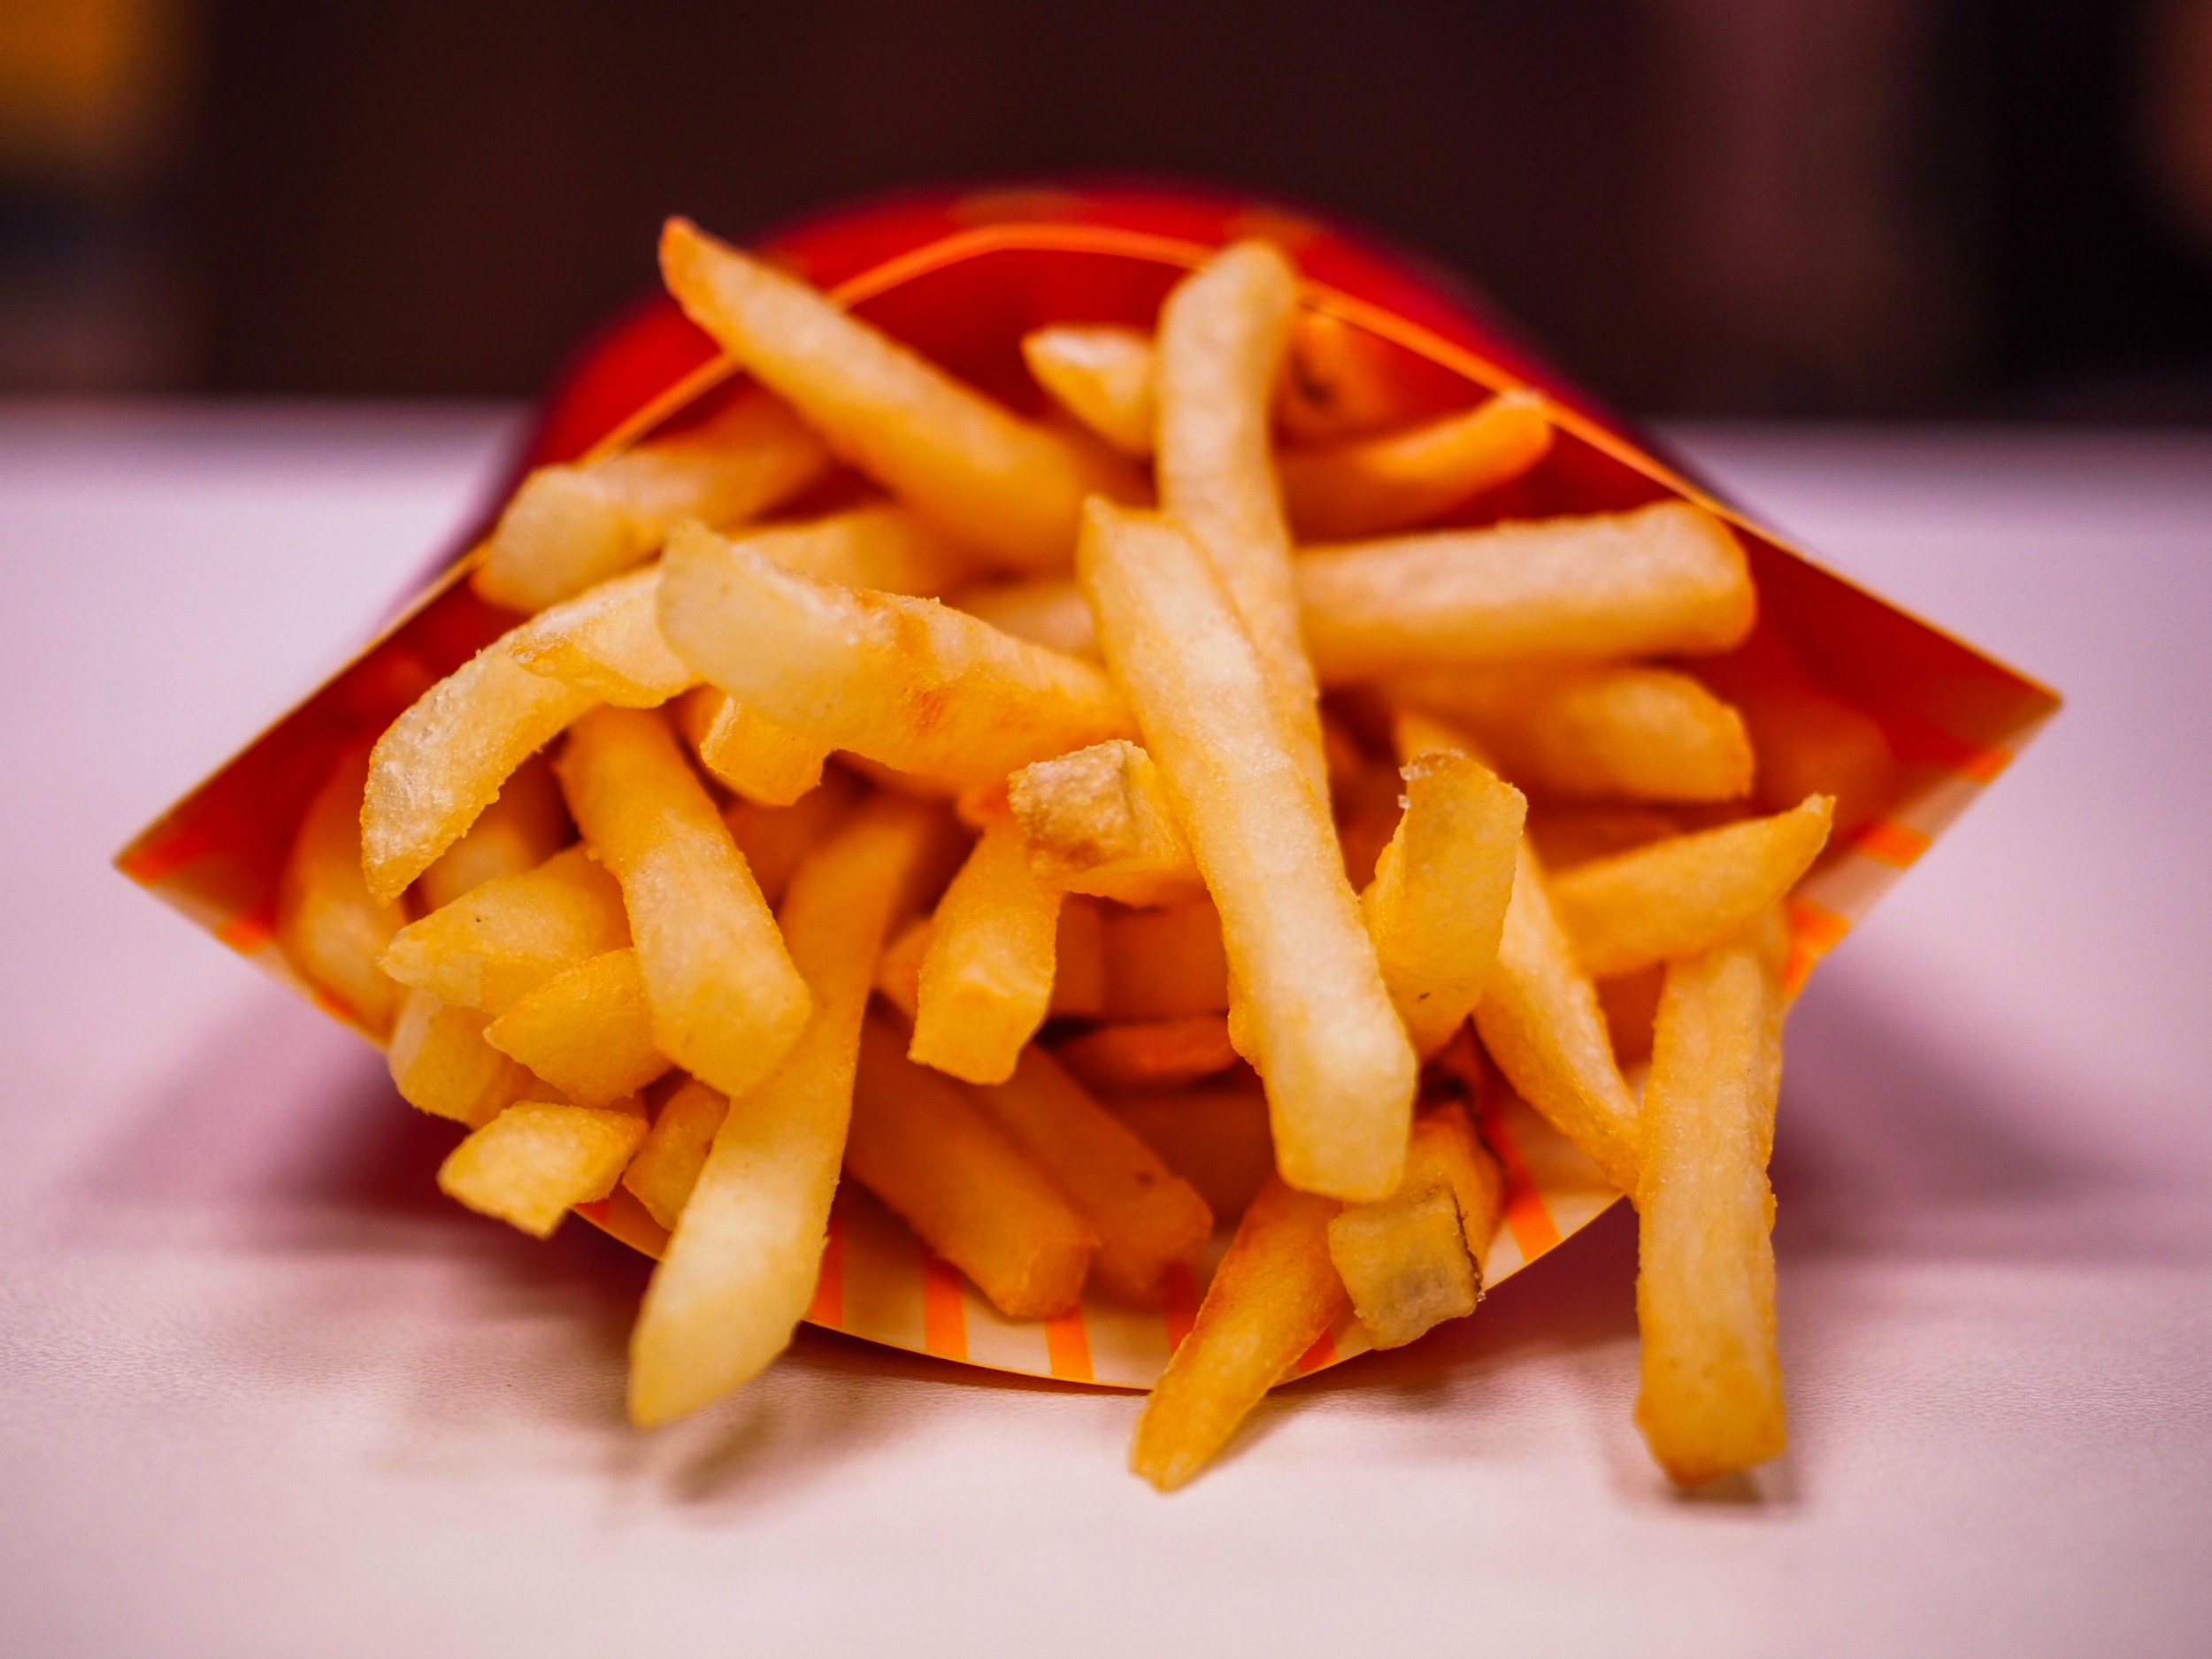 Whats really in mcdonalds french fries solutioingenieria Images